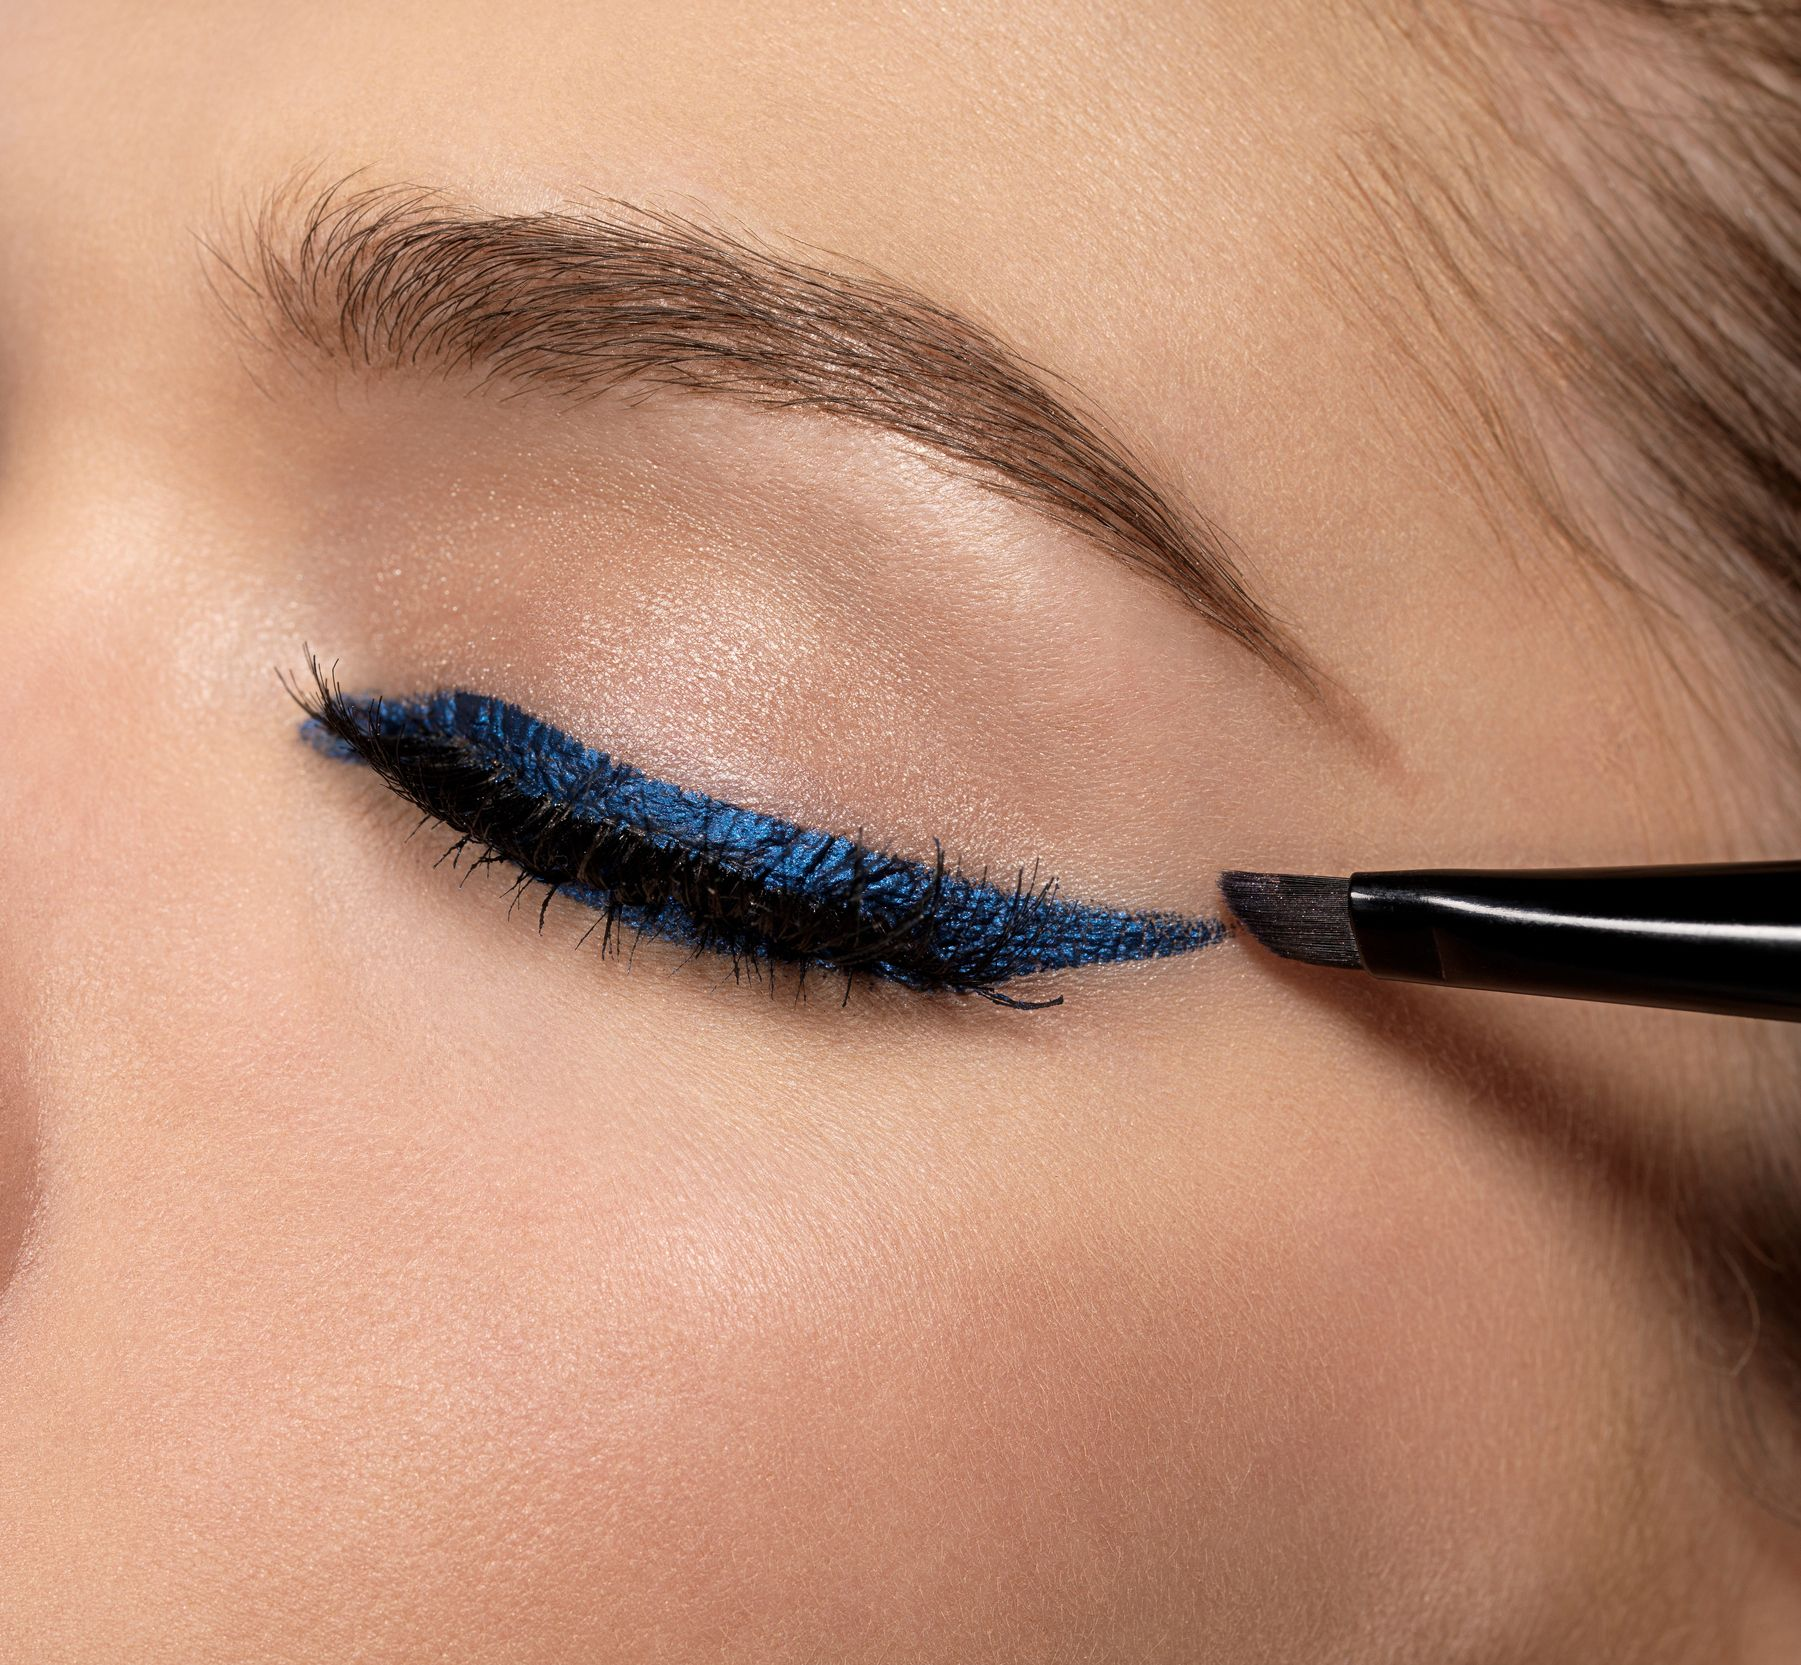 How to apply eyeliner thats even straight and really really pretty